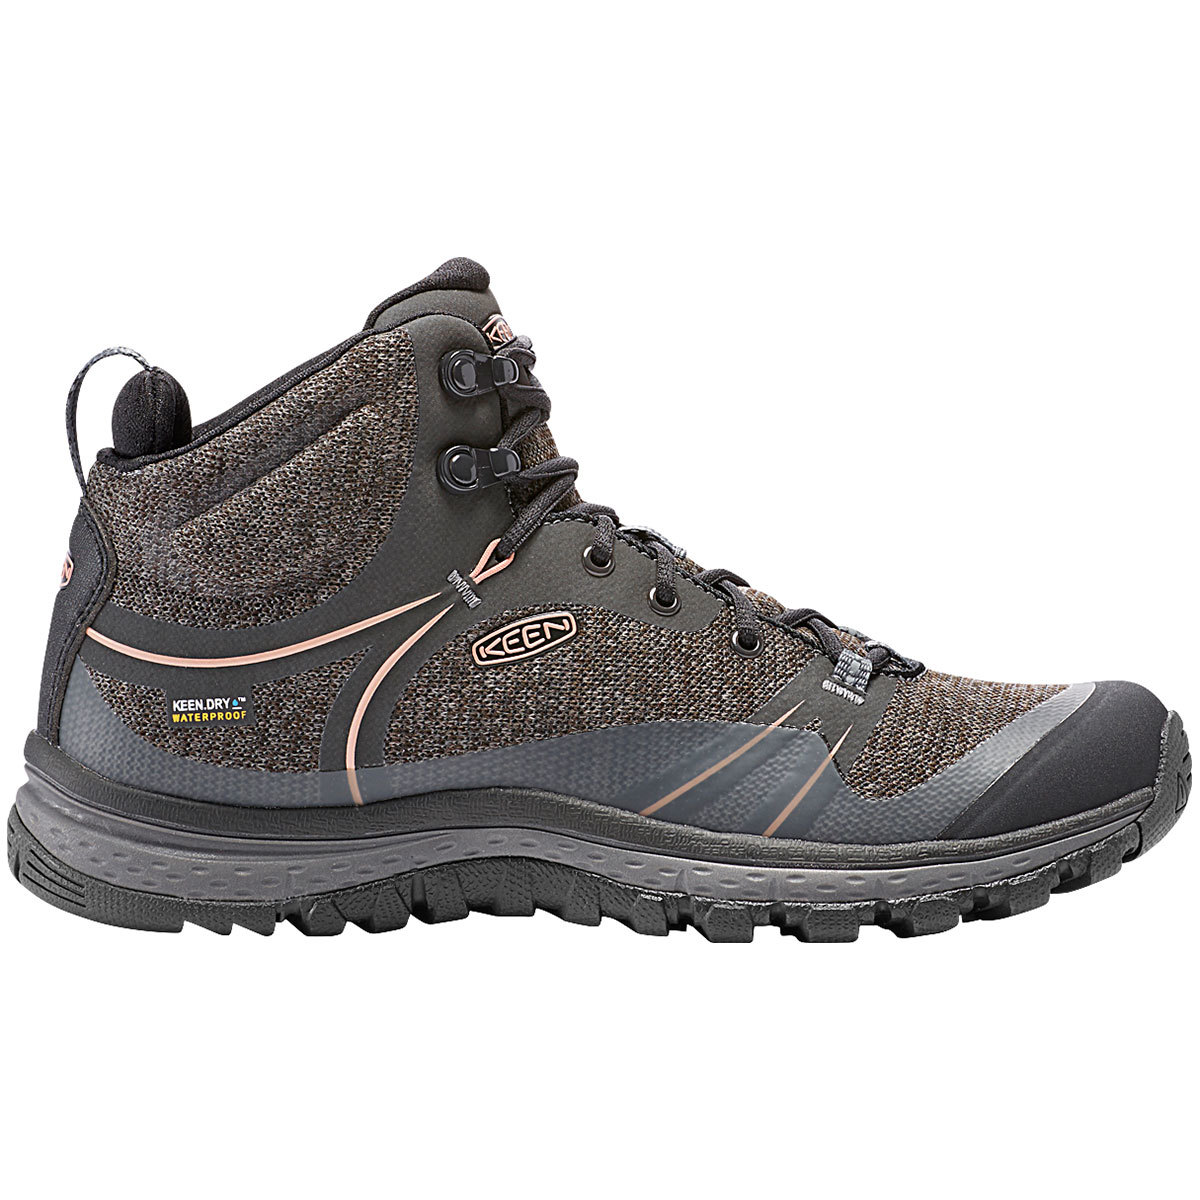 Keen Women's Terradora Mid Waterproof Hiking Boots, Raven - Black, 7